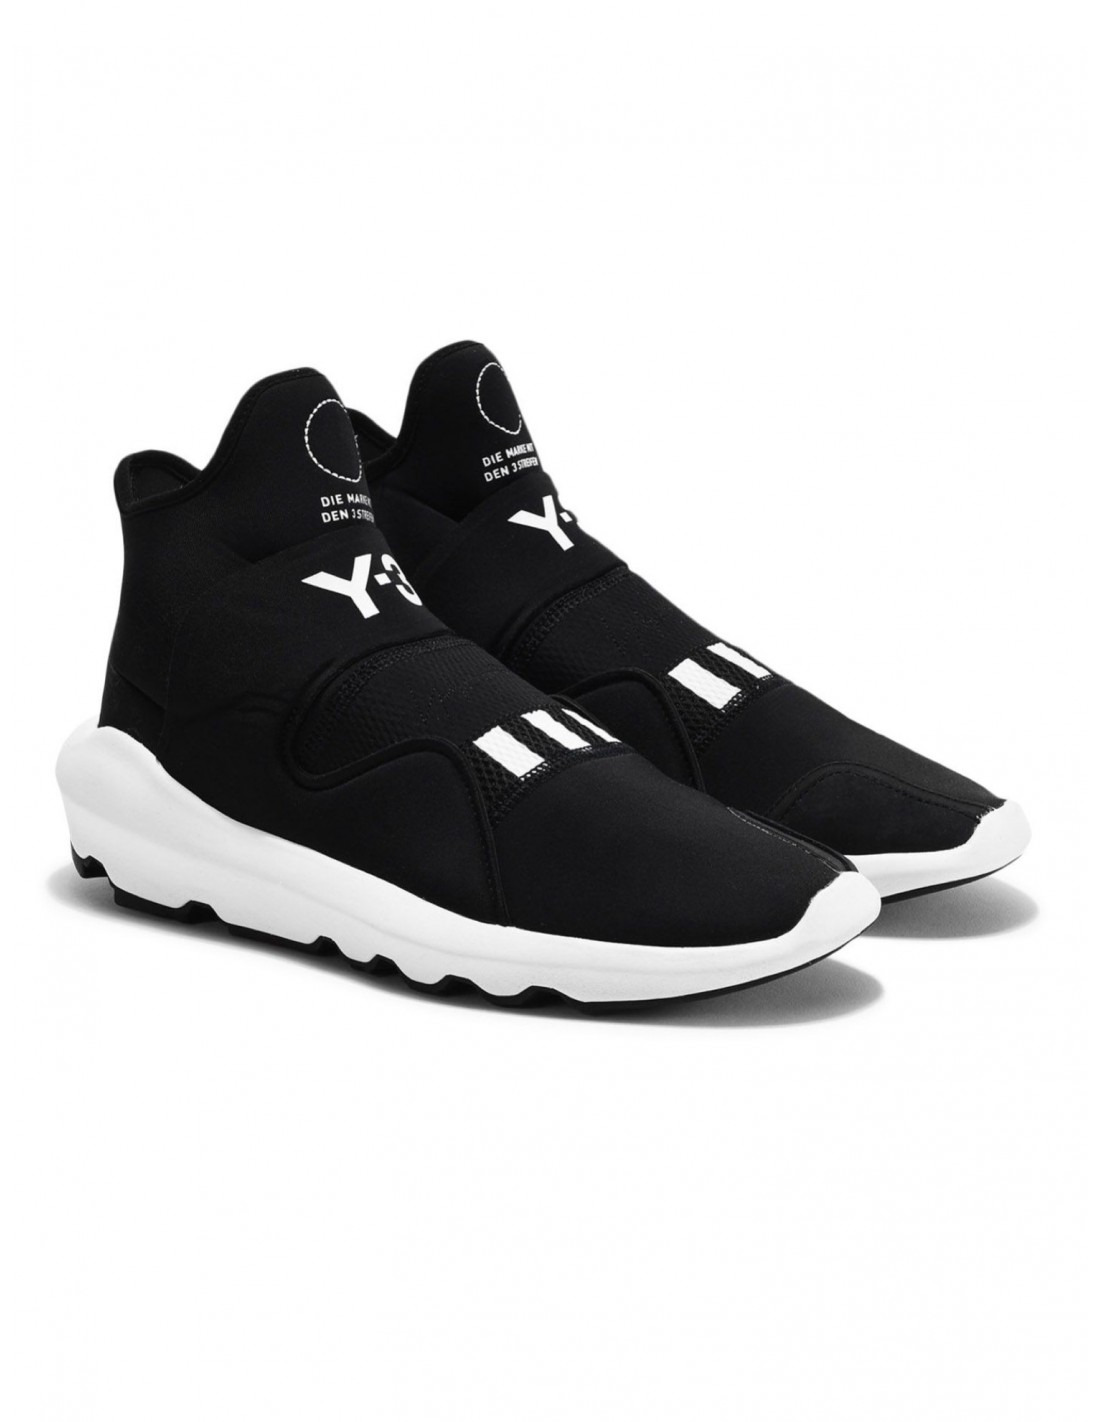 176a5b2b5bf8 ... Y-3 SUBEROU slip-on sneakers in black neoprene x ADIDAS. Reduced price   New